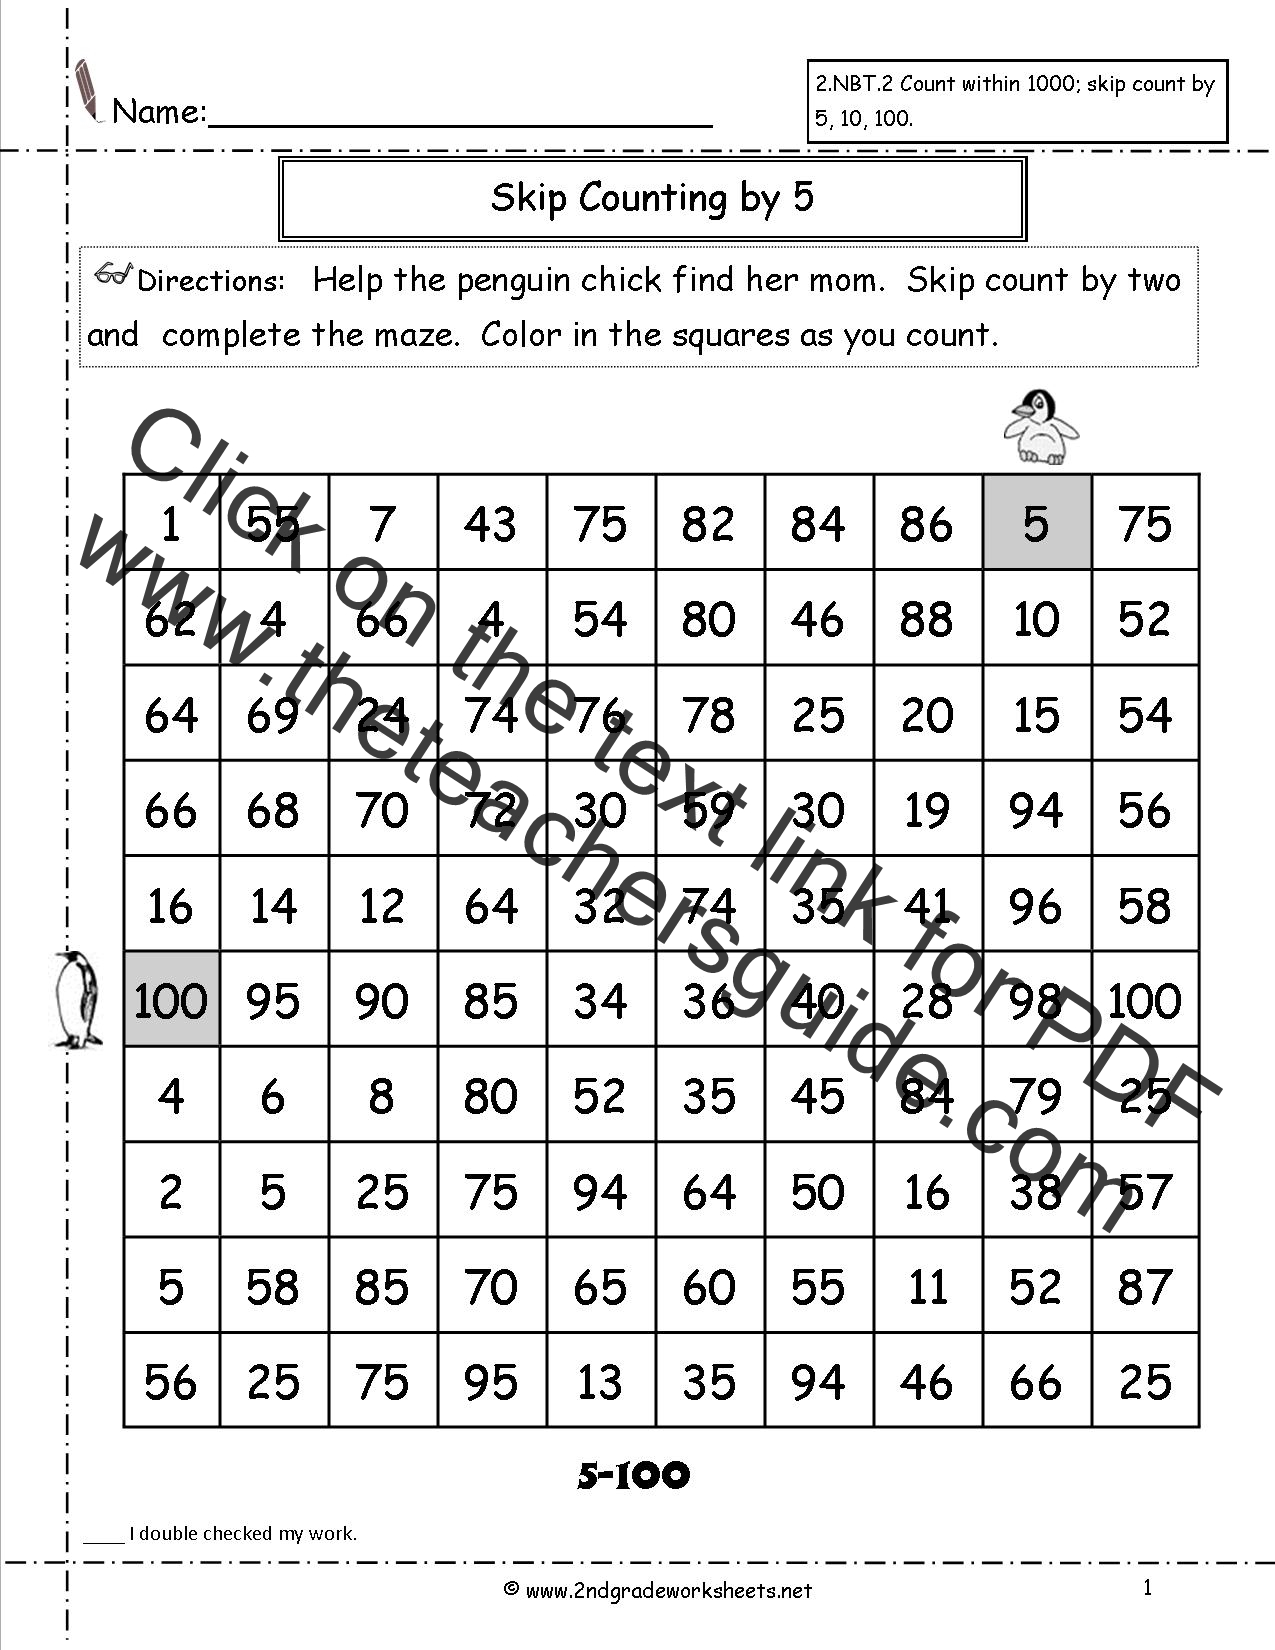 Printables Printable Counting Worksheets free skip counting worksheets by 5 maze